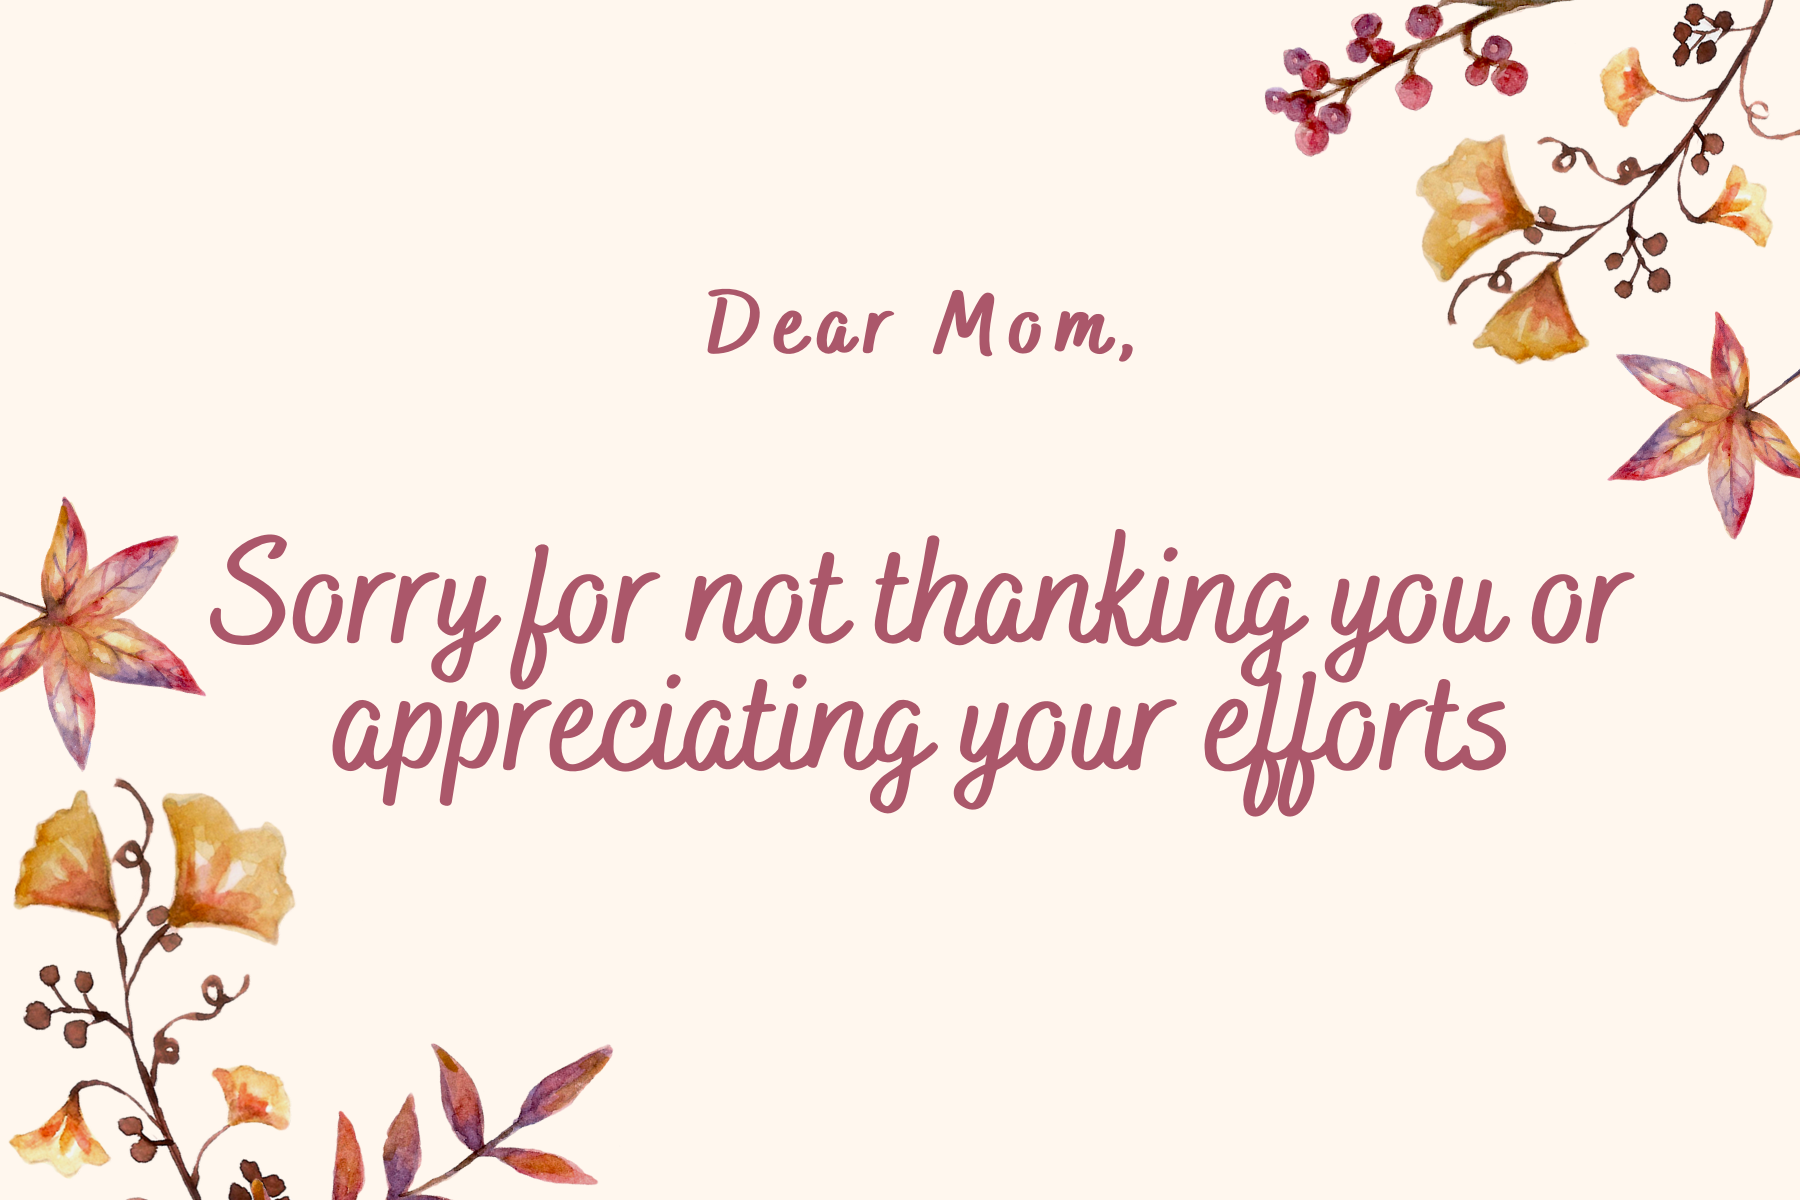 Sorry for not thanking you or appreciating your efforts